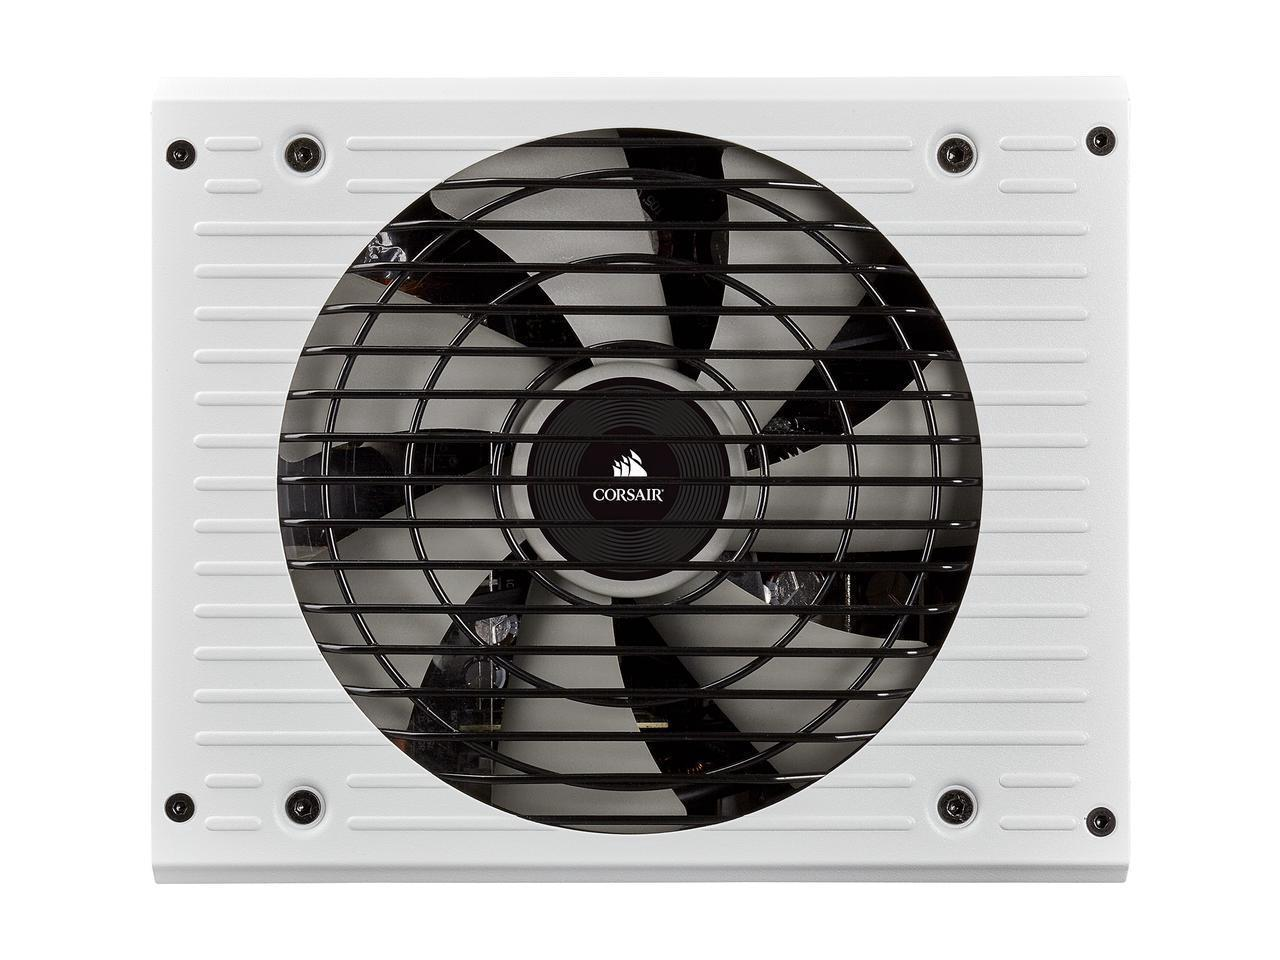 CORSAIR RM850x WHITE - 850 Watt 80 PLUS Gold Full Modular PSU